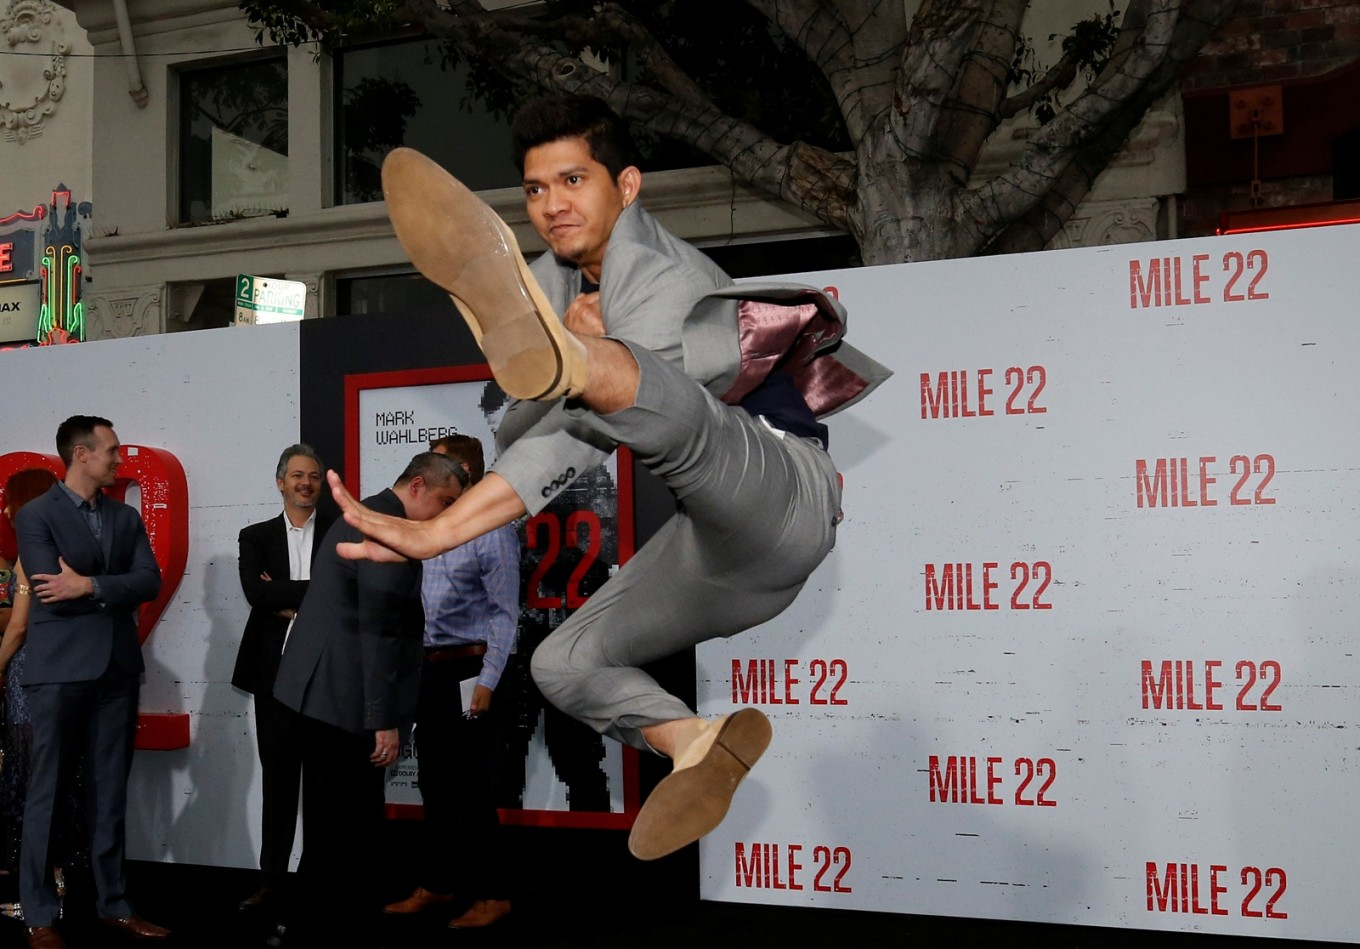 Indonesian silat master Iko Uwais is Hollywood's new action star